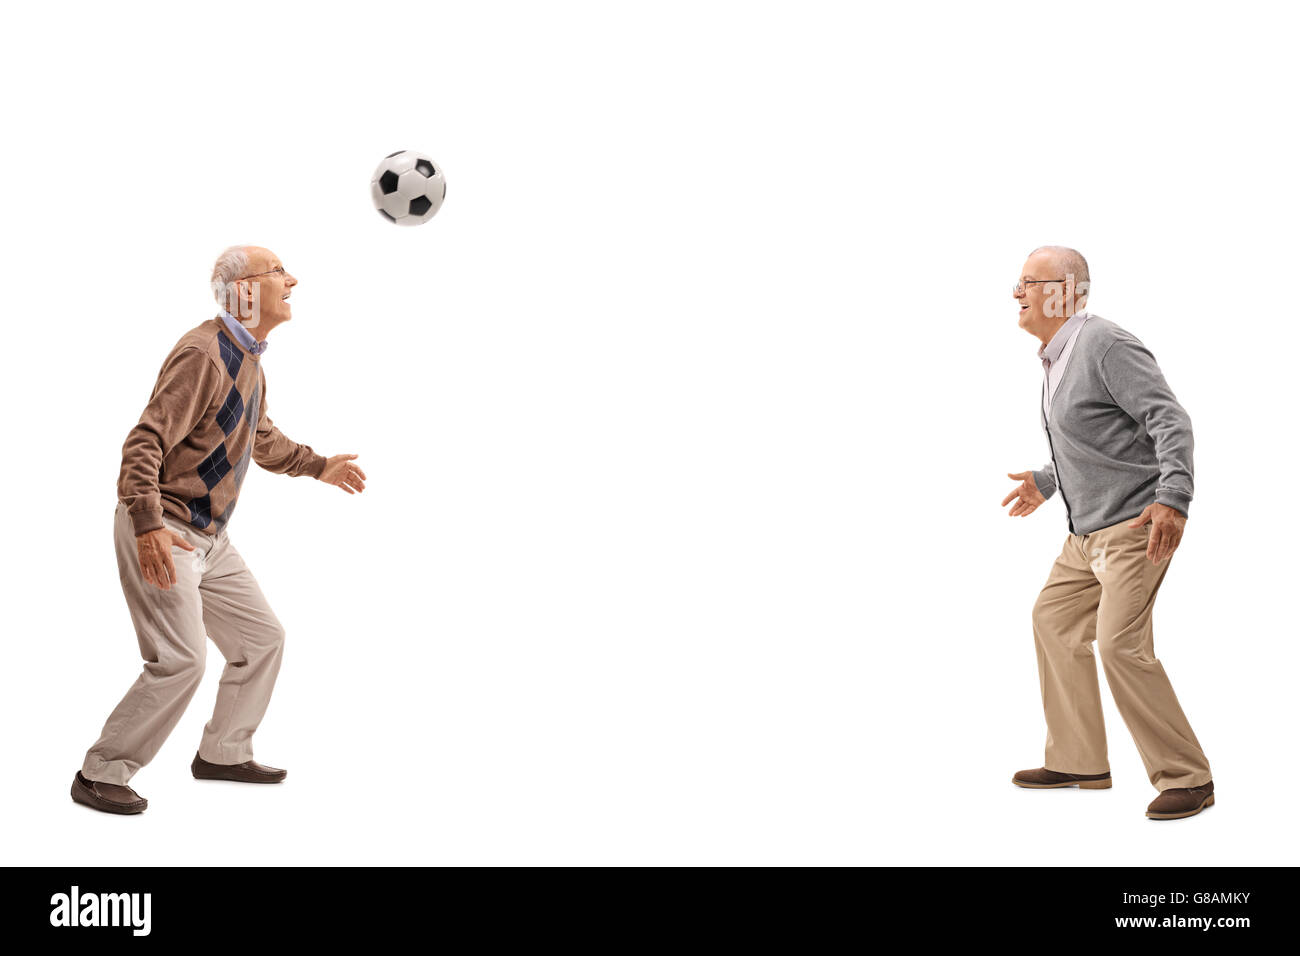 Two seniors passing a football between themselves isolated on white background - Stock Image